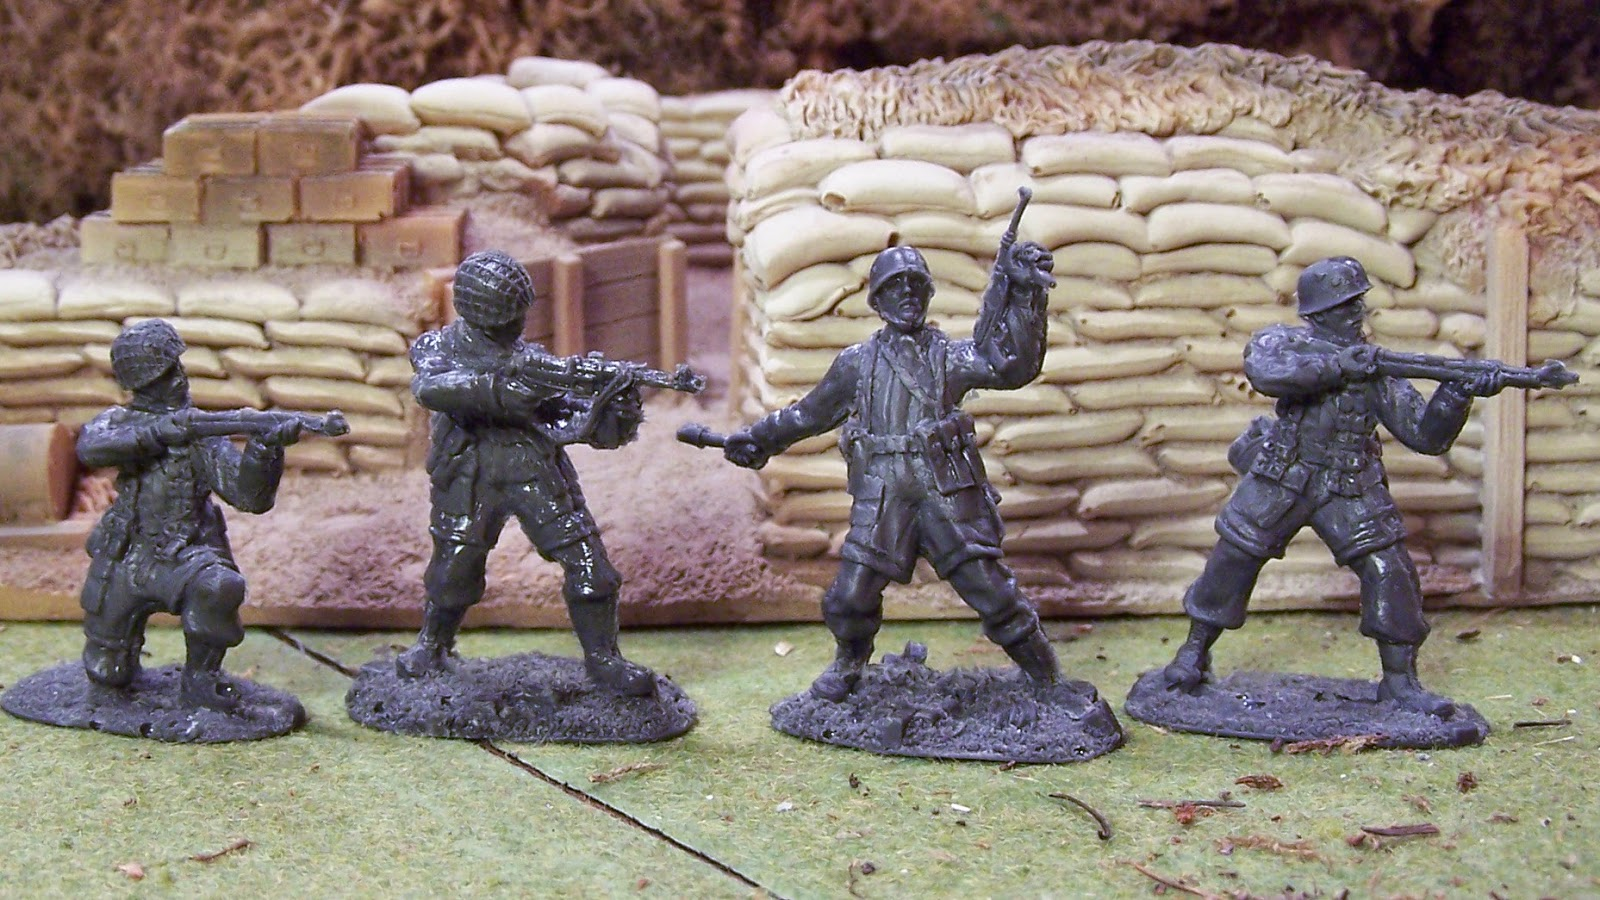 WWII Plastic Toy Soldiers: Action Casting - Toy Soldiers